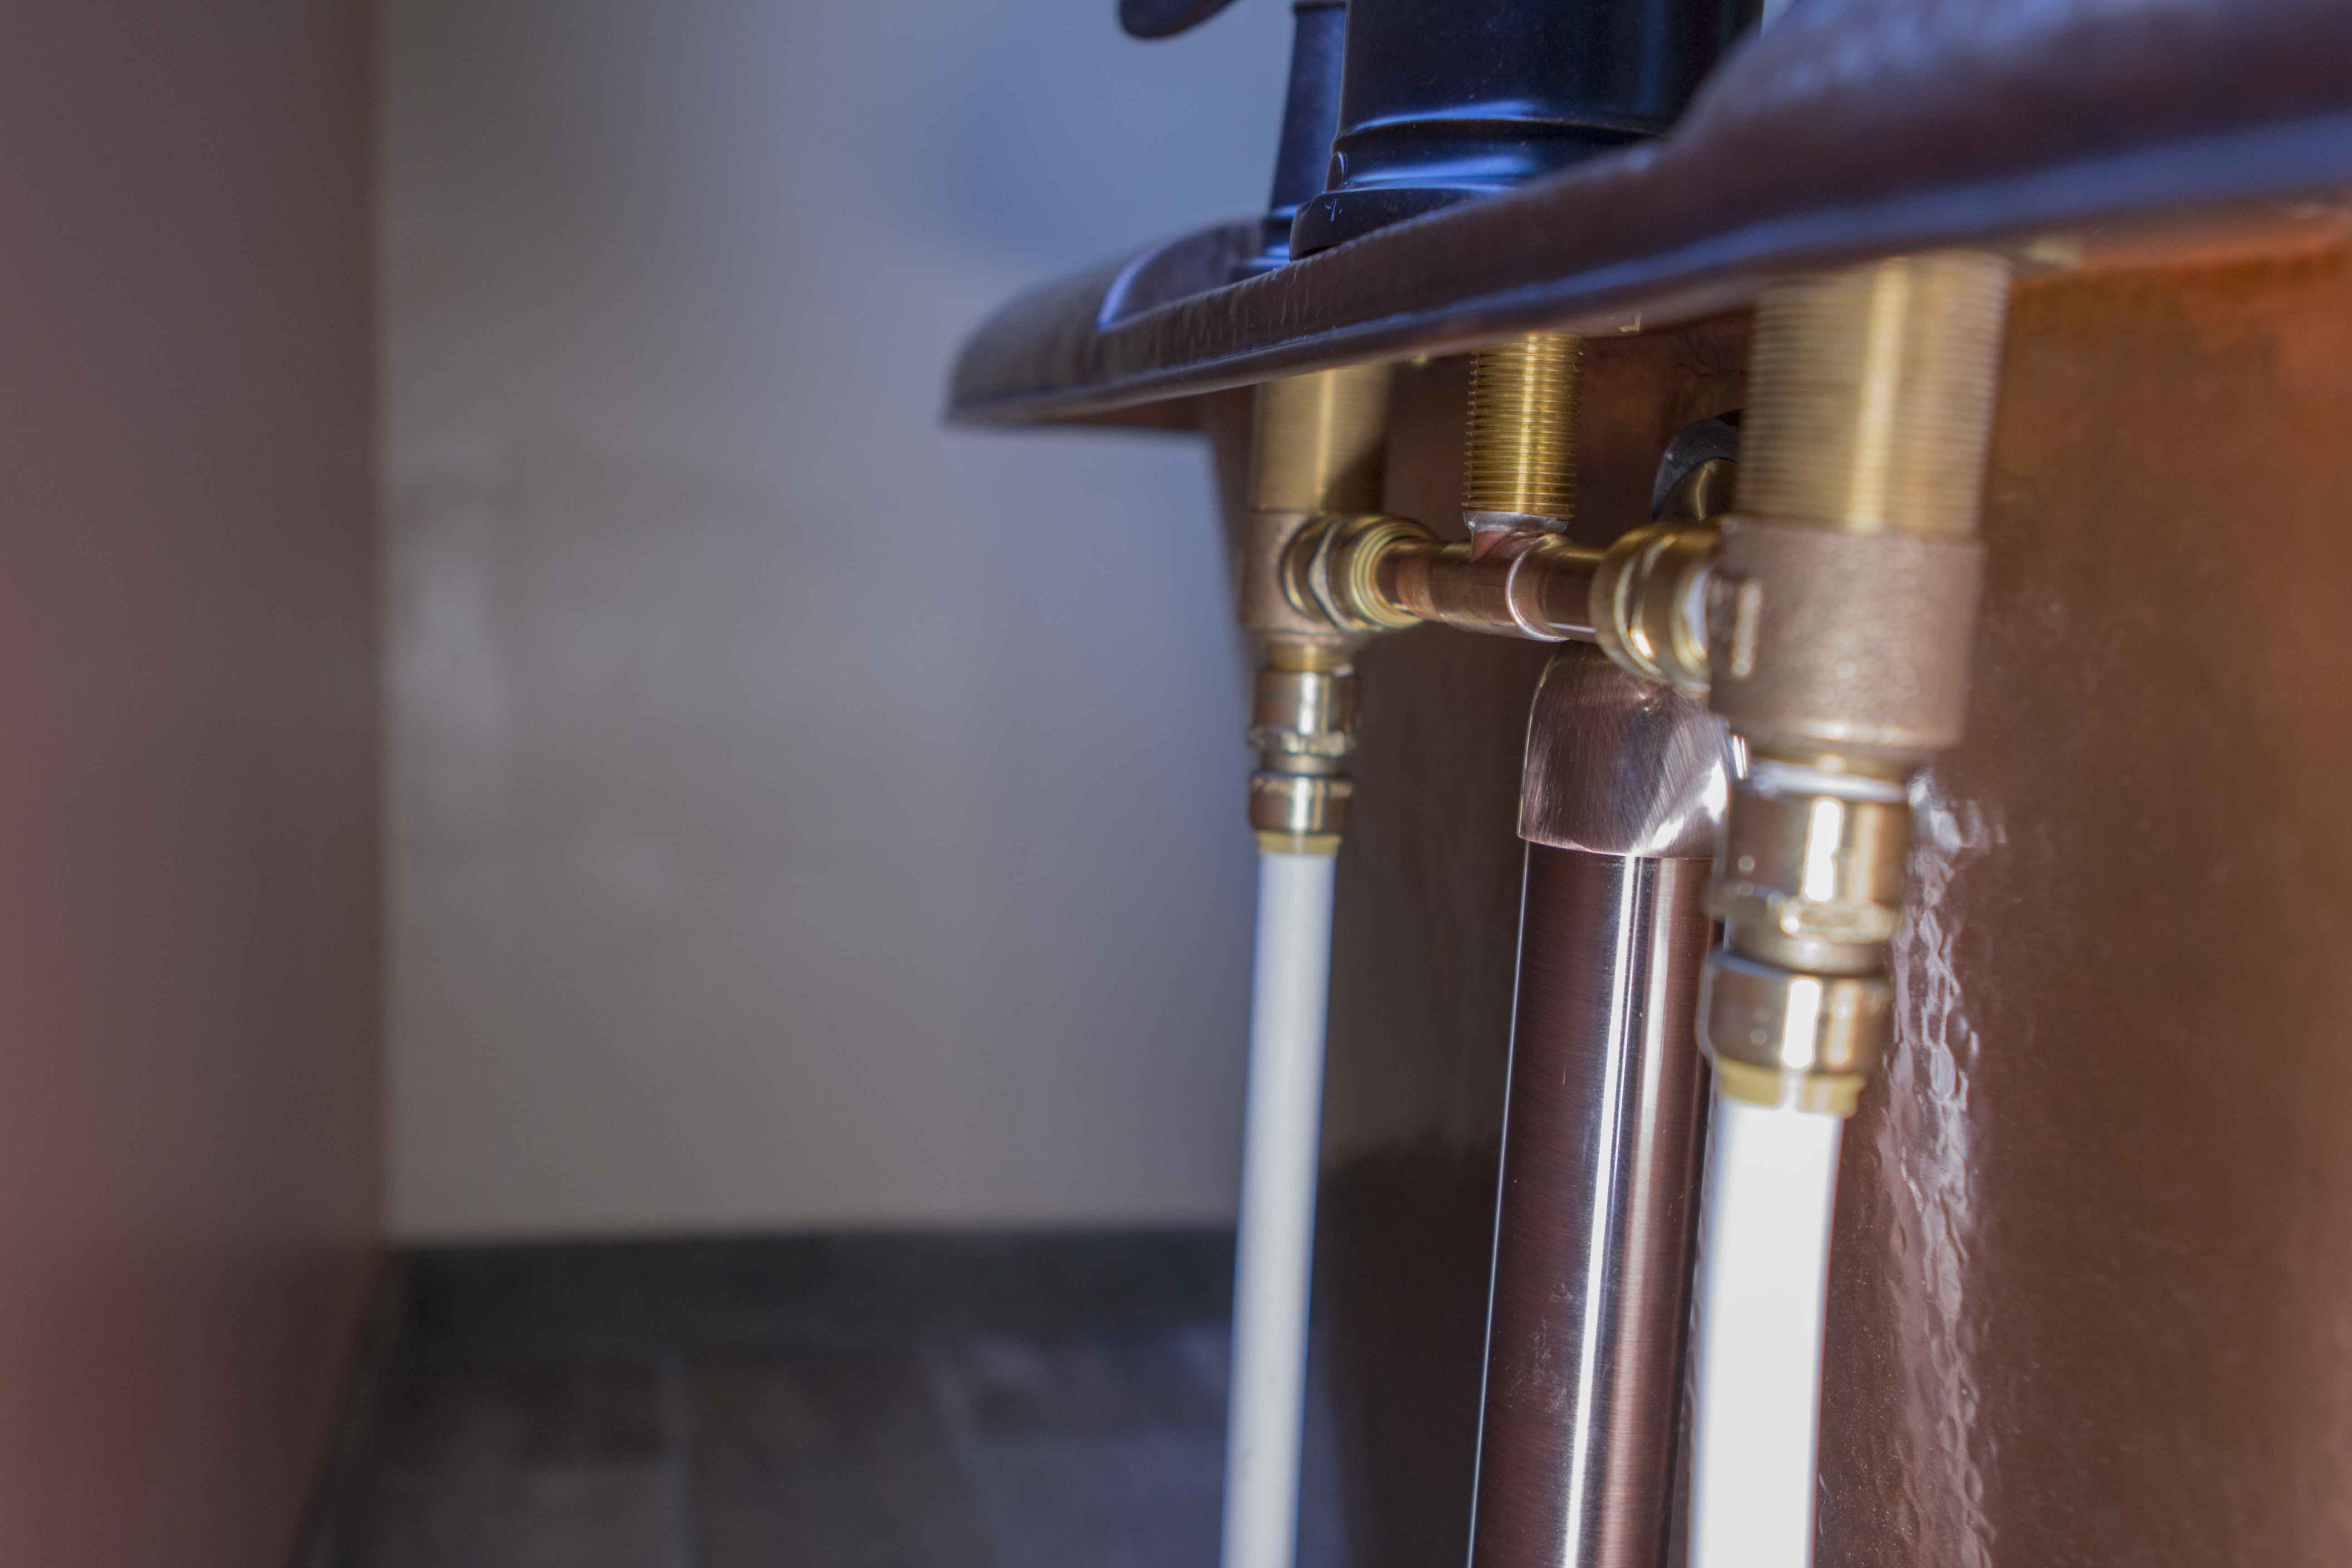 How to Install a Freestanding Bathtub: The Thales Copper